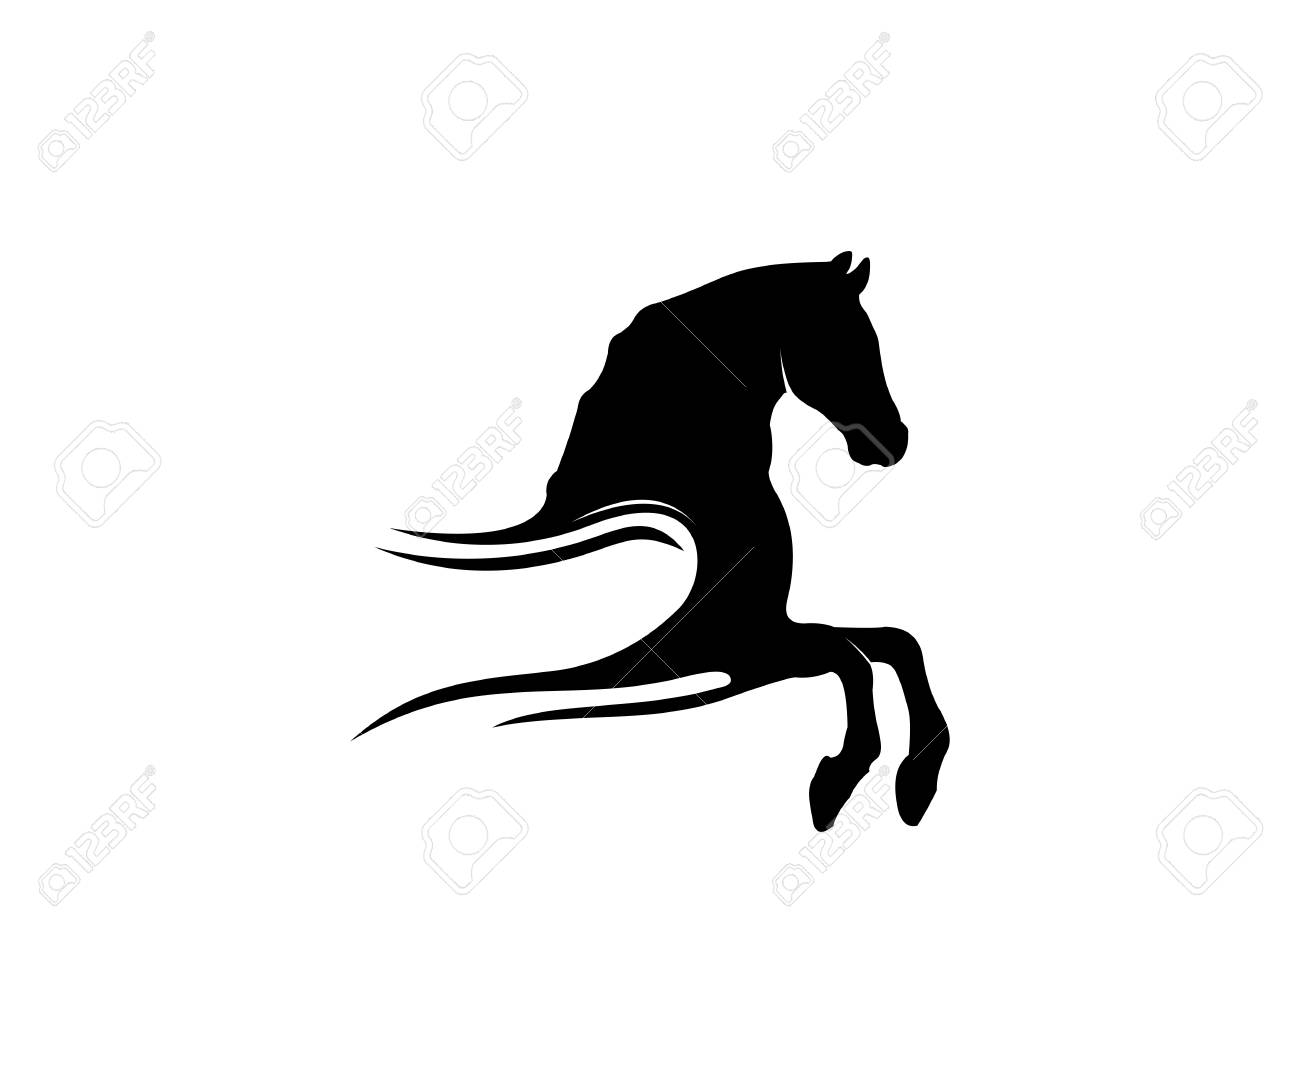 Simple Horse Sport Vector Logo Design Inspiration For Racing Royalty Free Cliparts Vectors And Stock Illustration Image 110848104